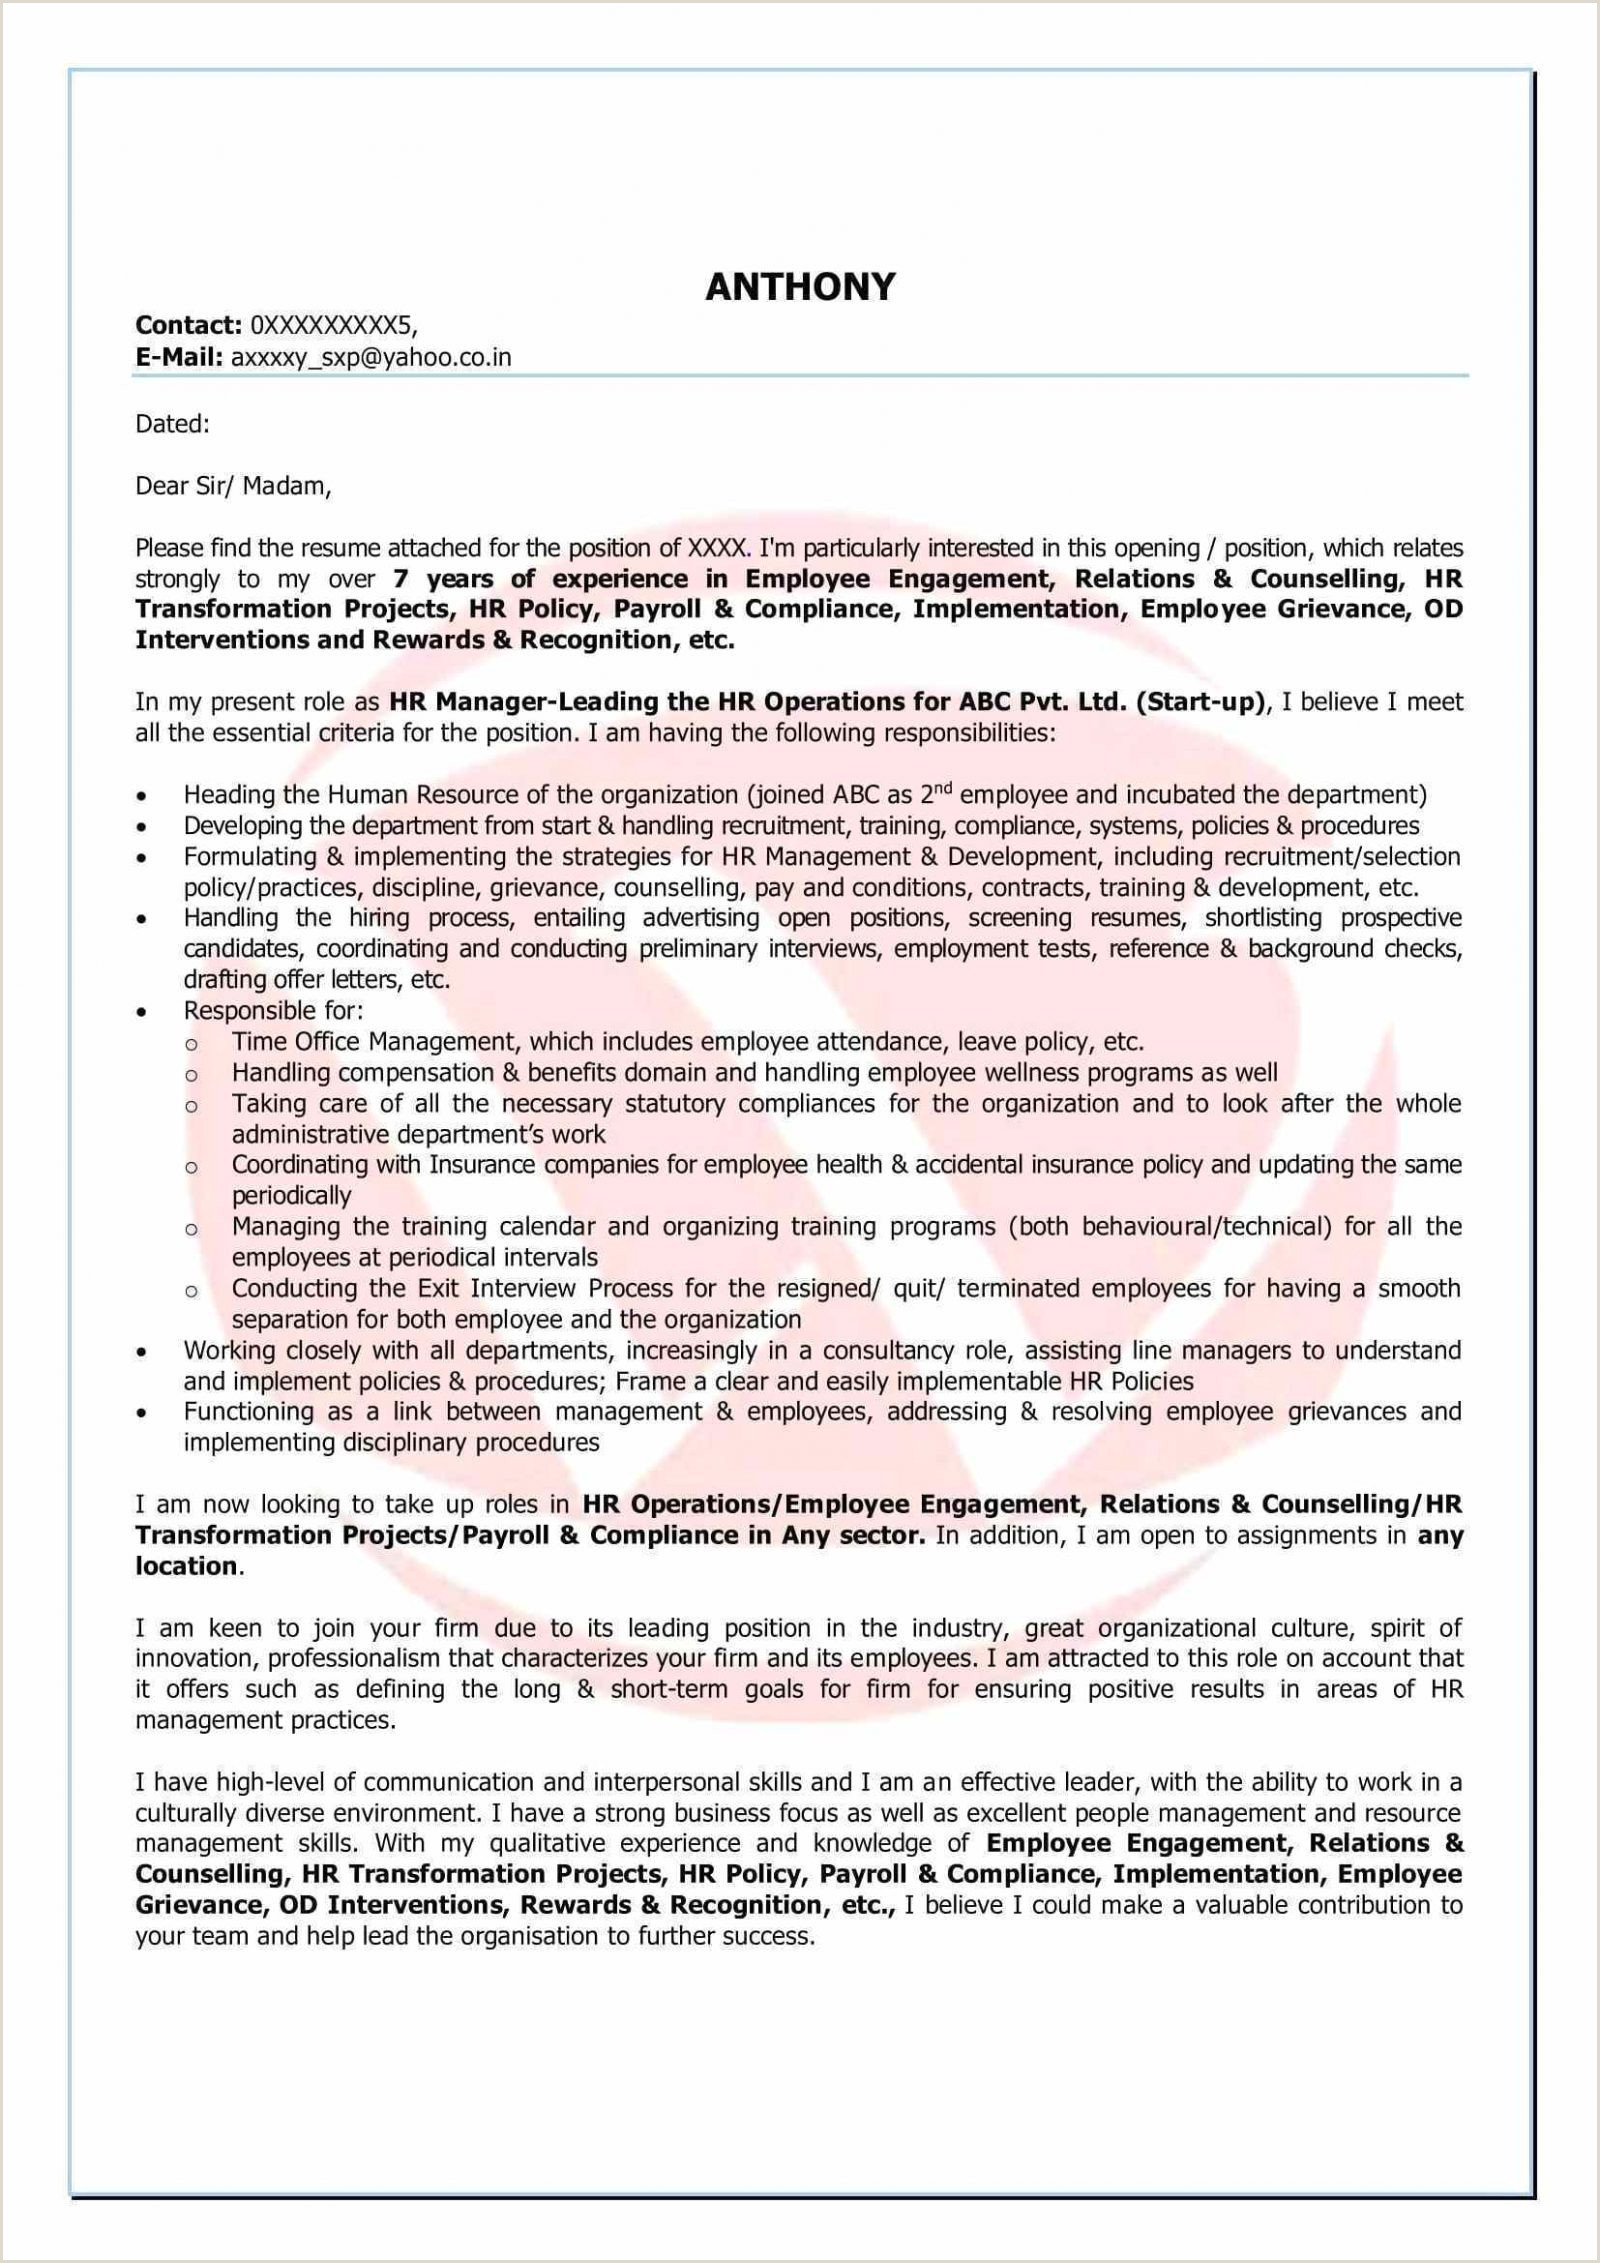 Marketing Manager Cover Letter Template Marketing Manager Cover Letter Sample